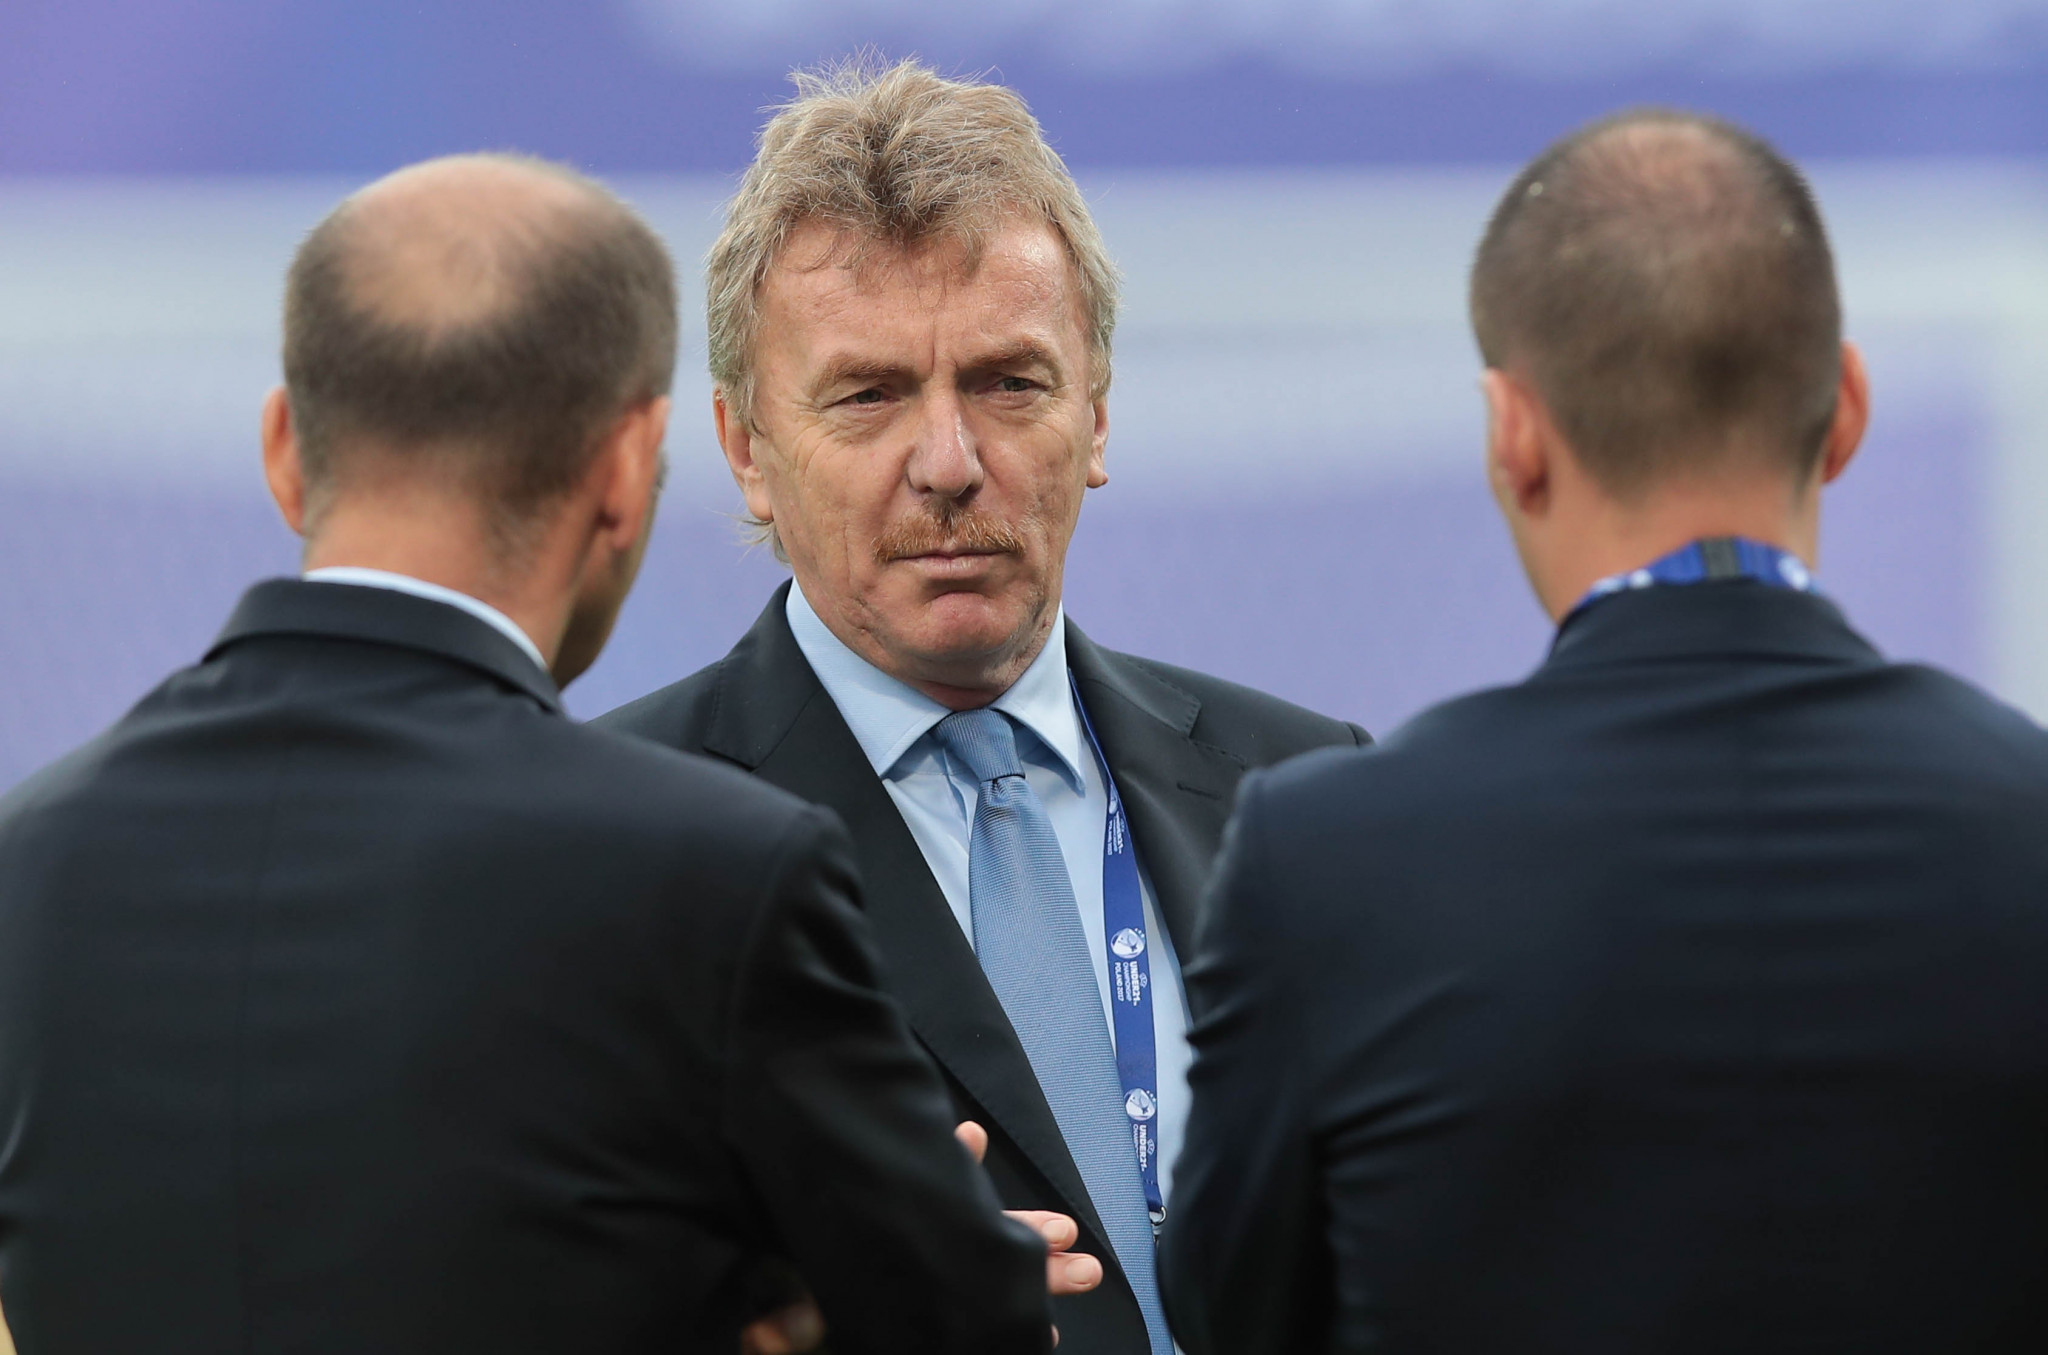 Candidates confirmed for UEFA Executive Committee positions